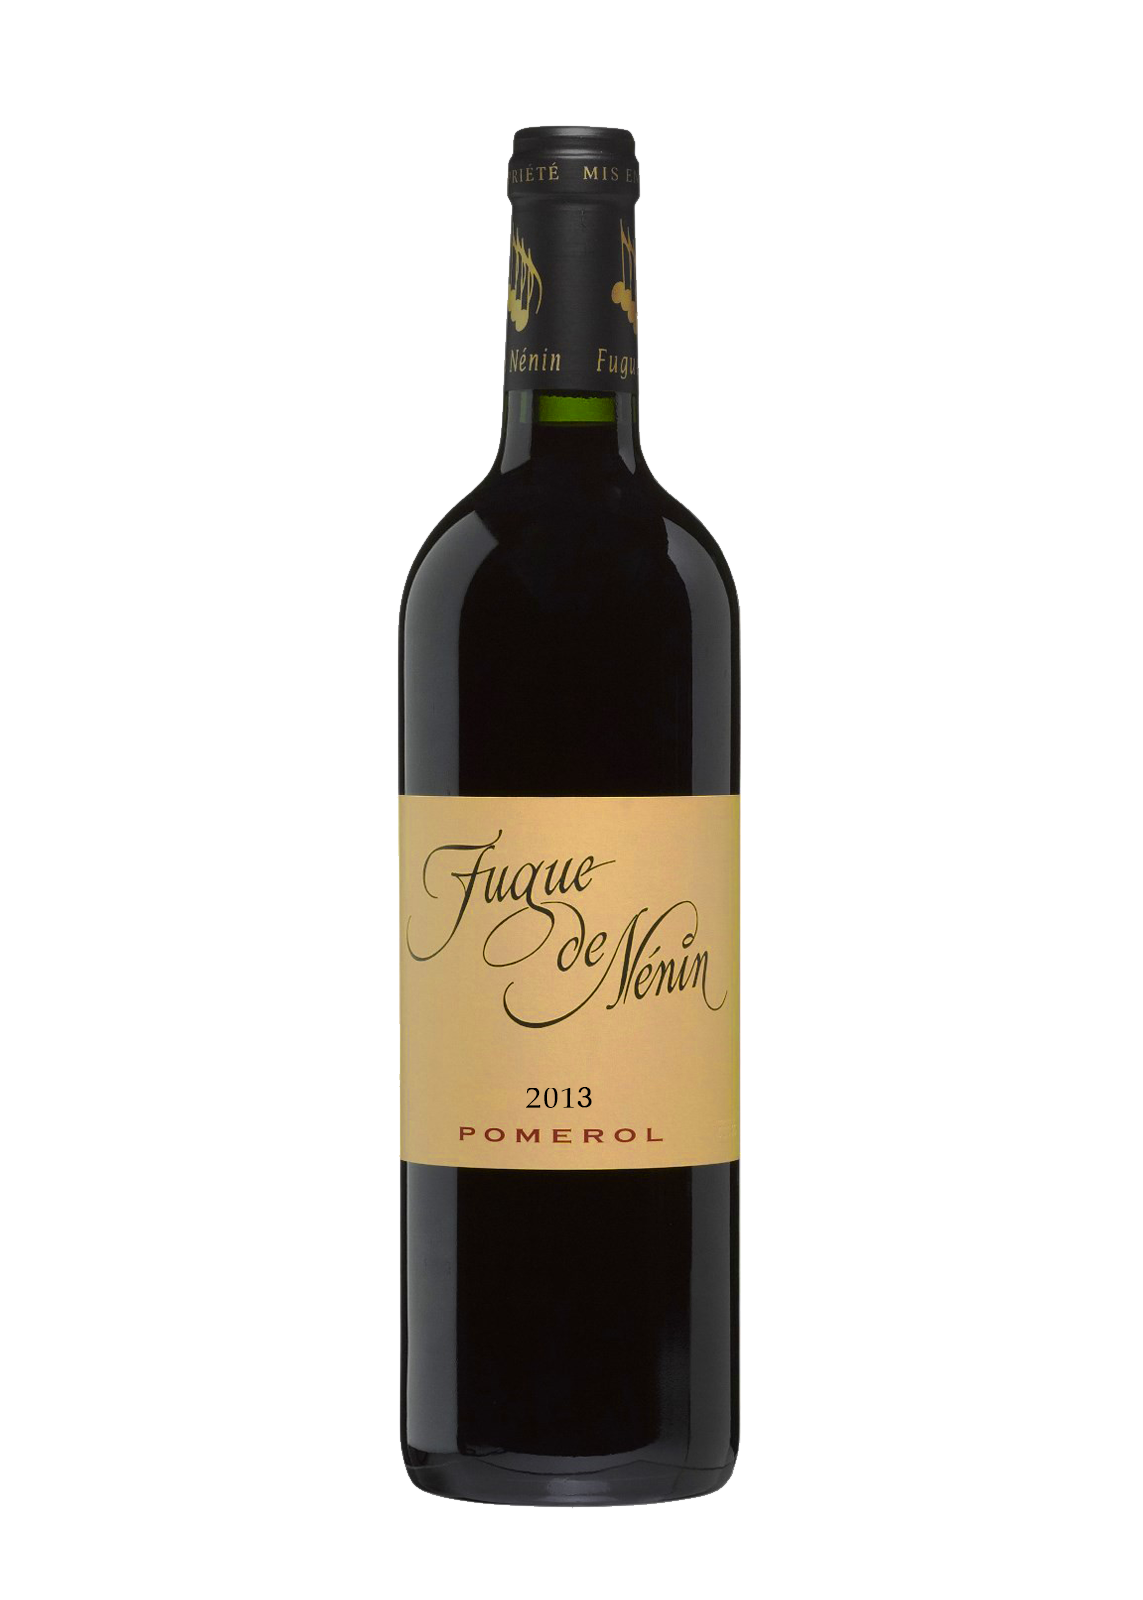 FUGUE DE NENIN POMEROL RED 2013 75CL